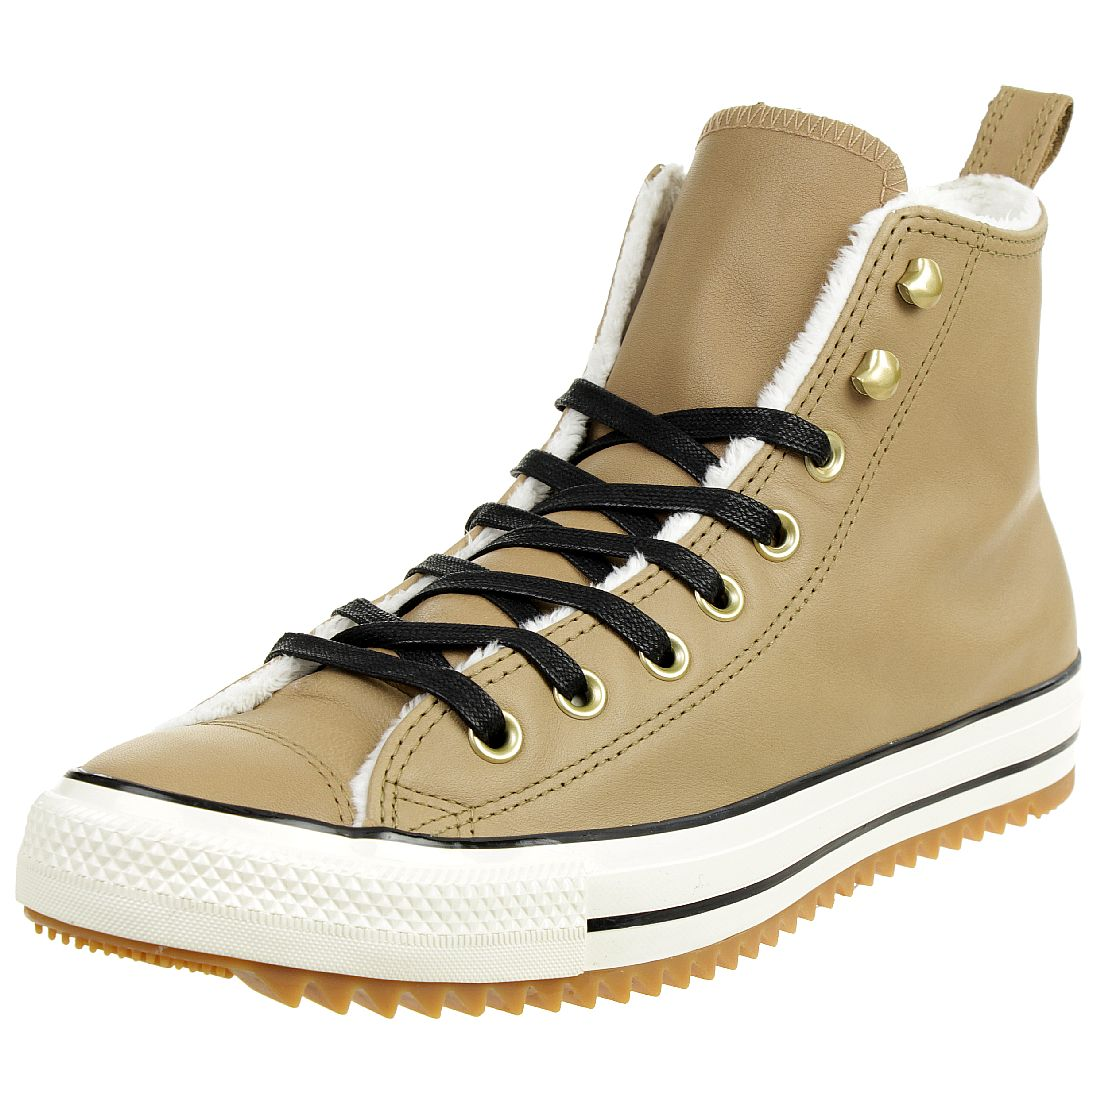 check out c38f6 70b79 Converse C Taylor All Star HIKER BOOTS HI Chuck Sneaker ...